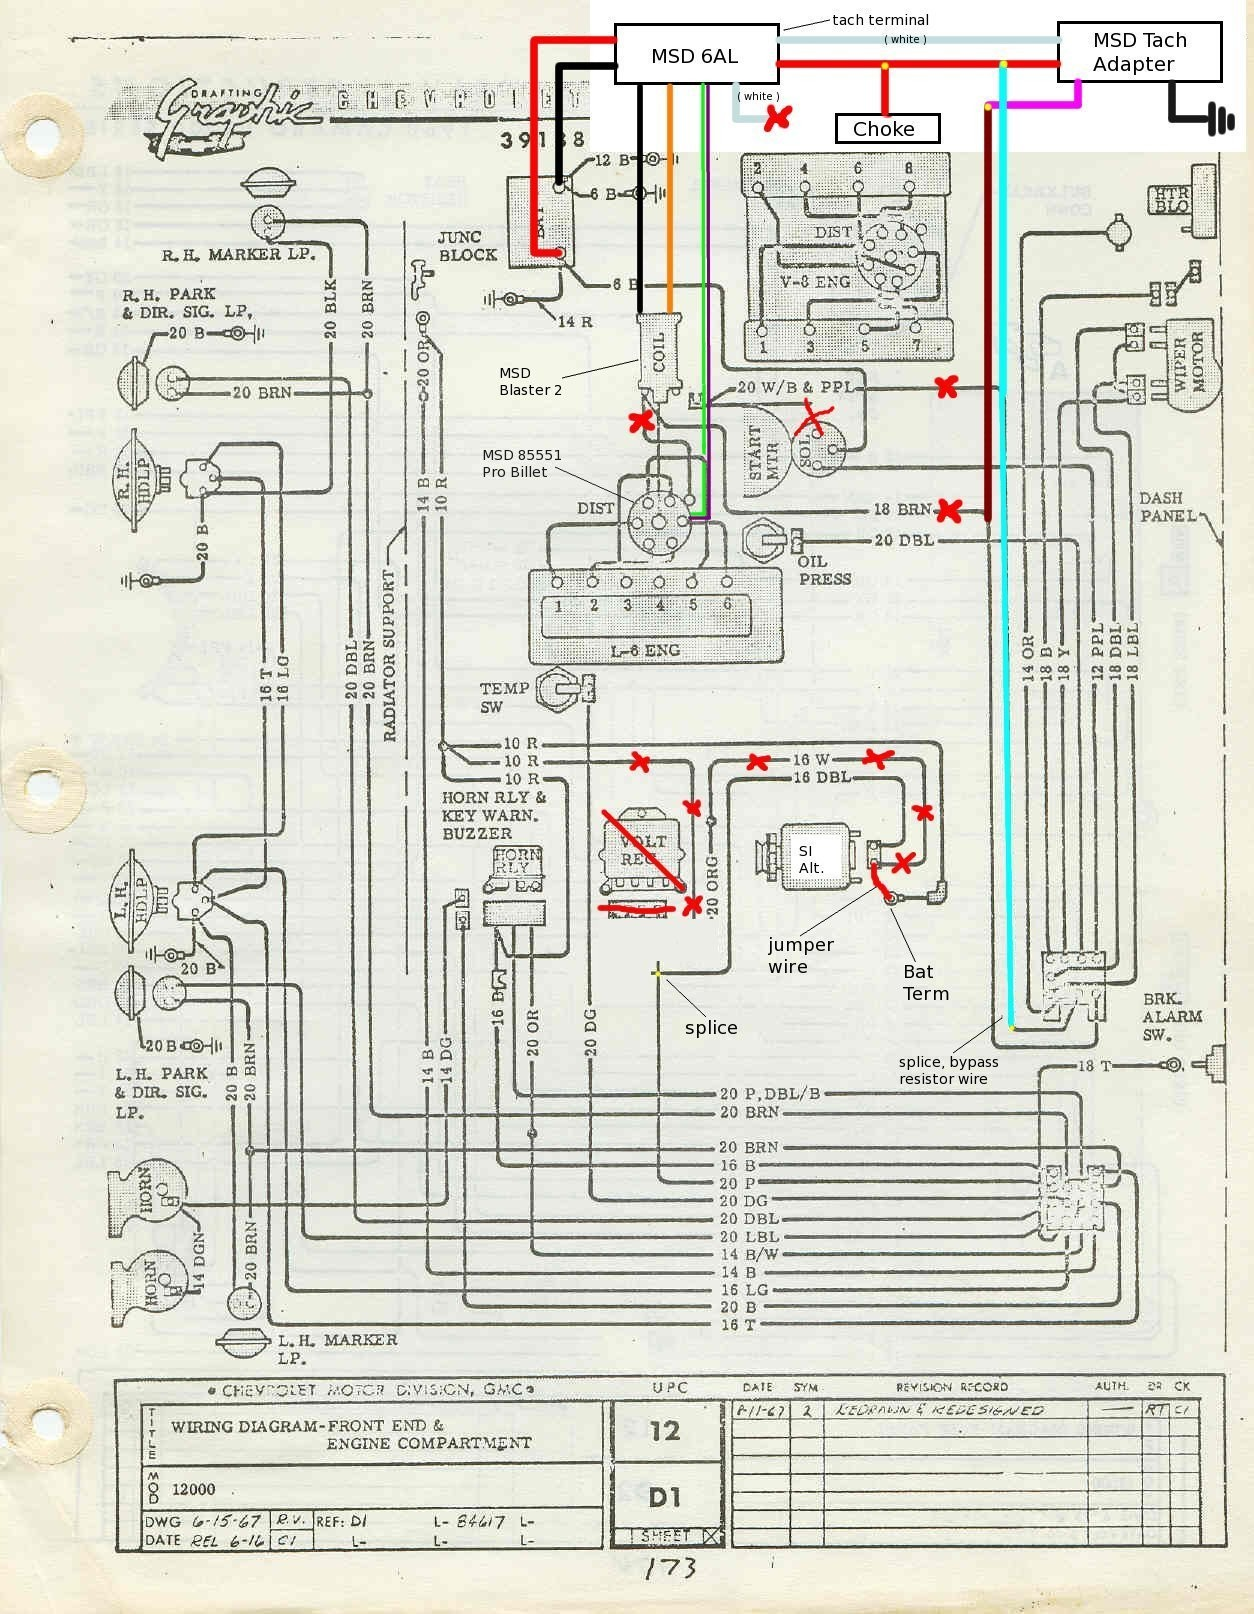 1979 Camaro Wiring Diagram : Camaro wiring diagram and schematics